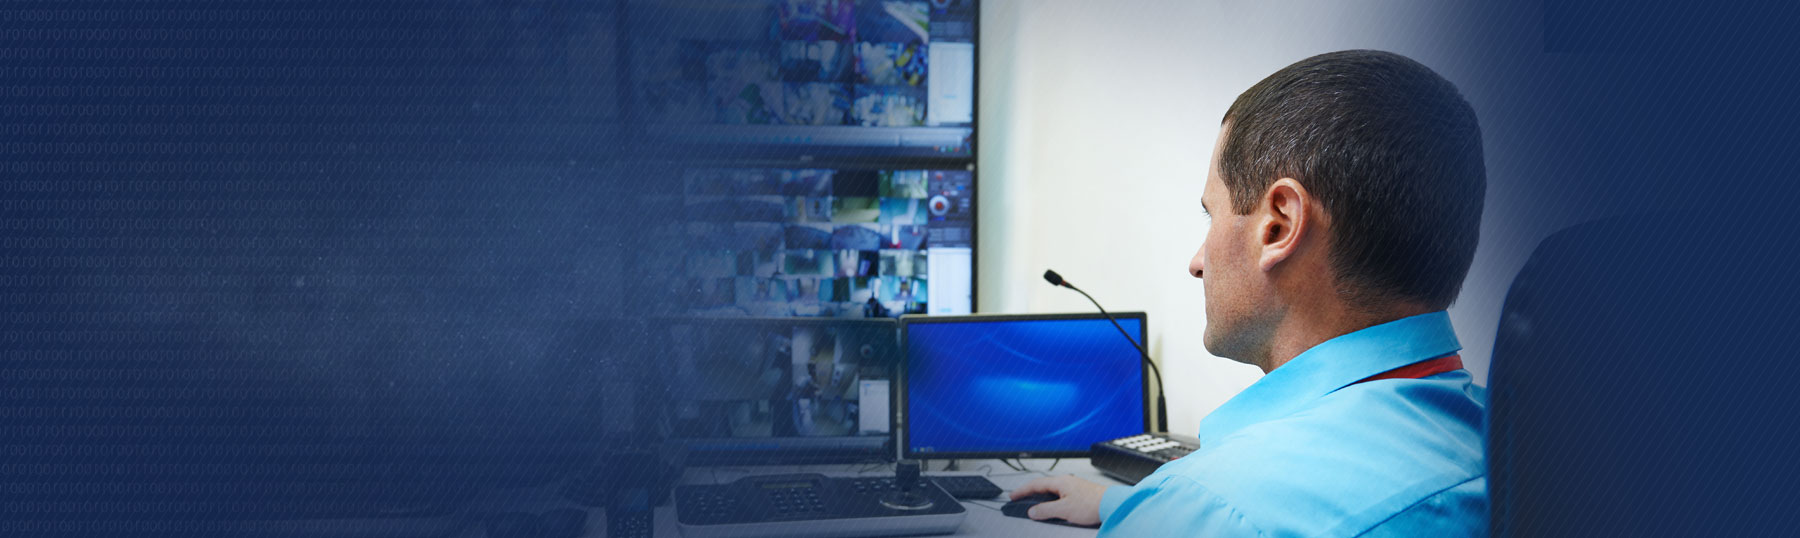 Electronic Security Management | GC&E Systems Group